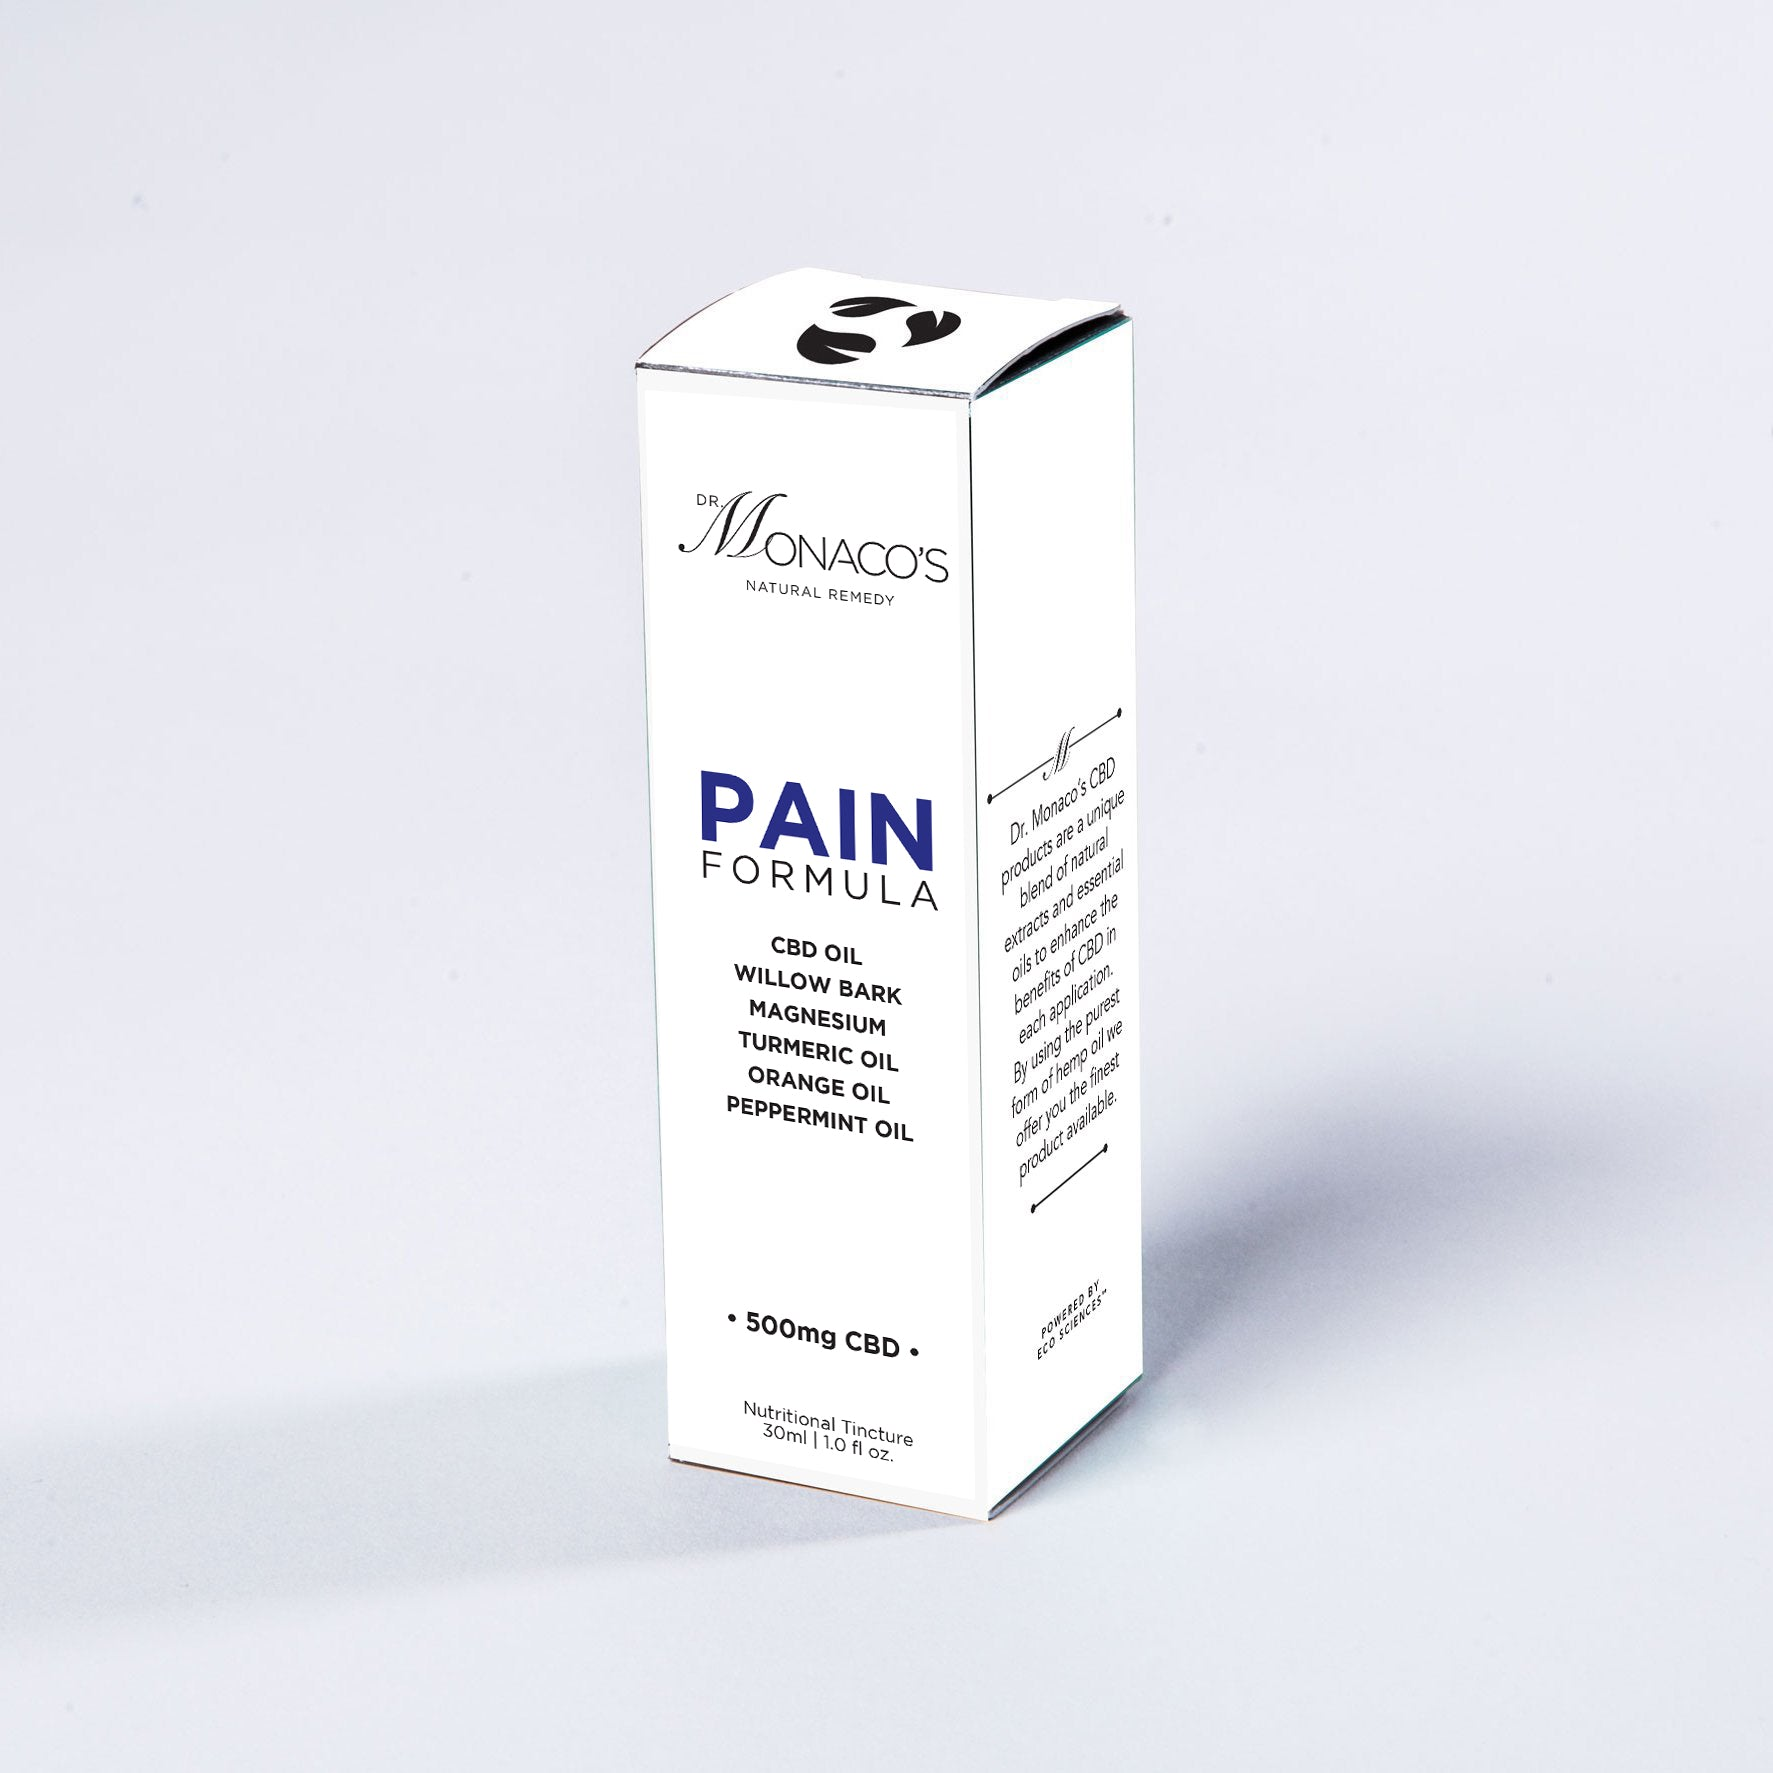 Pain Formula CBD Oil (Nutritional Tincture 500mg CBD)